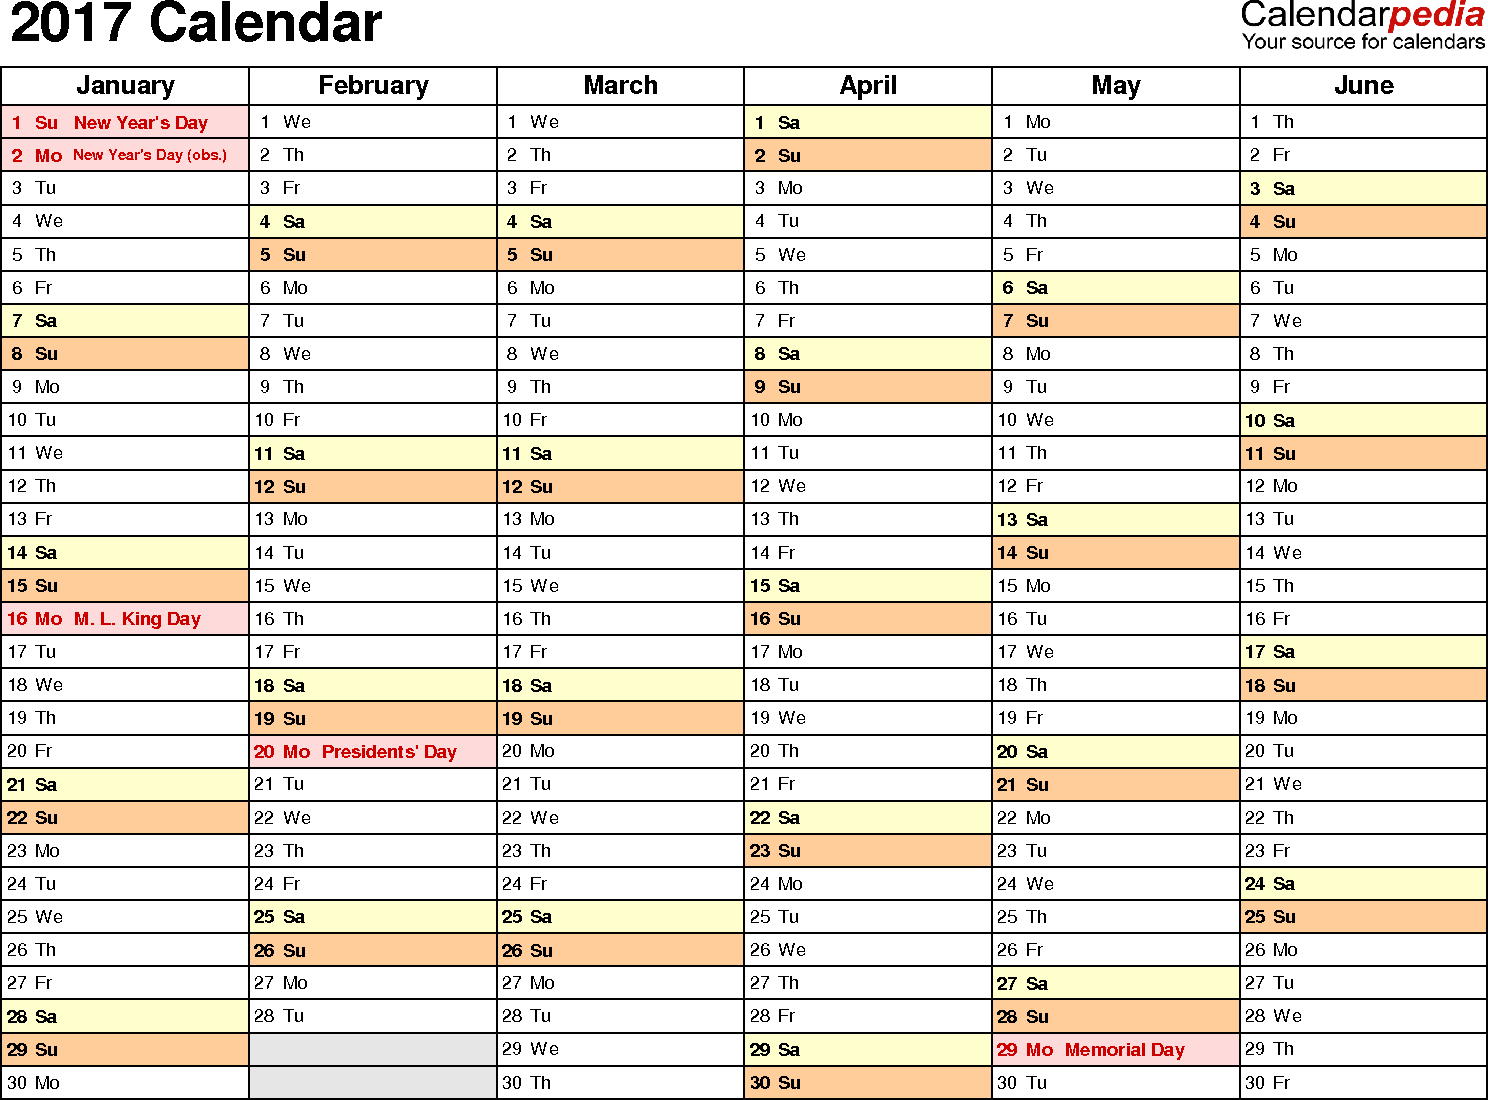 Ediblewildsus  Remarkable  Calendar  Download  Free Printable Excel Templates Xls With Heavenly Template   Calendar For Excel Months Horizontally  Pages Landscape Orientation With Amusing Excel Linest Also Excel Function List In Addition Power Query Excel And Excel Formula Cheat Sheet As Well As Excel Convert Date To Text Additionally Excel Isblank From Calendarpediacom With Ediblewildsus  Heavenly  Calendar  Download  Free Printable Excel Templates Xls With Amusing Template   Calendar For Excel Months Horizontally  Pages Landscape Orientation And Remarkable Excel Linest Also Excel Function List In Addition Power Query Excel From Calendarpediacom